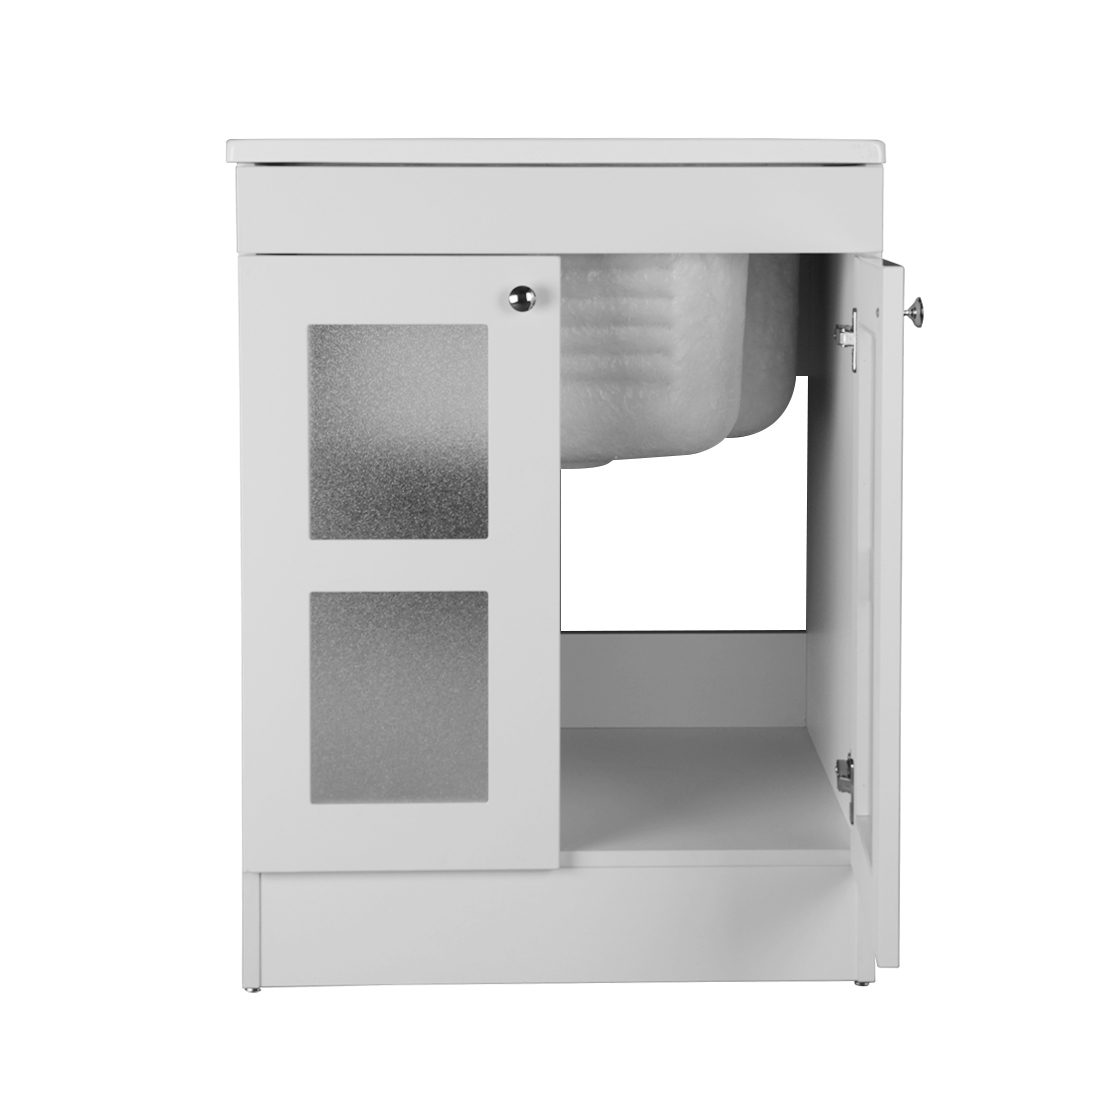 Essen 24.4inch Laundry Cabinet White Inside View